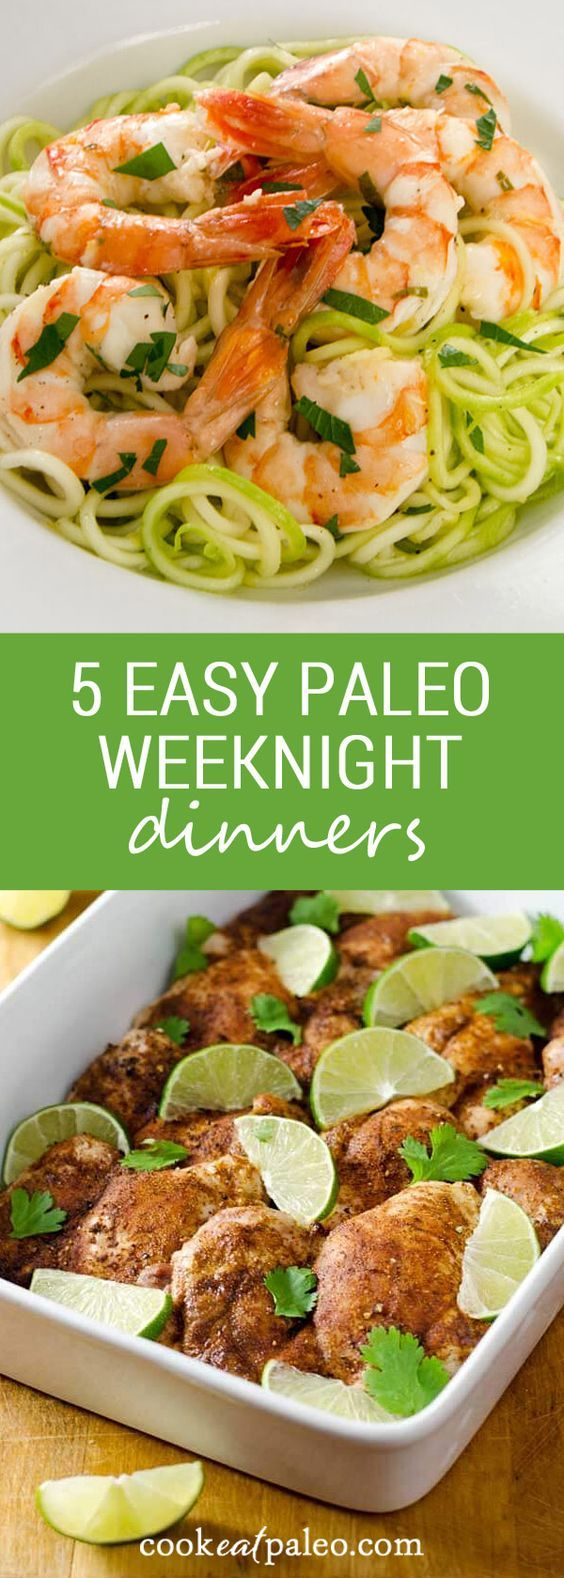 Easy paleo weeknight dinners for when you need to get supper on the table. These go-to recipes make eating paleo every day easier. {gluten-free, grain-free, paleo} ~ cookeatpaleo.com